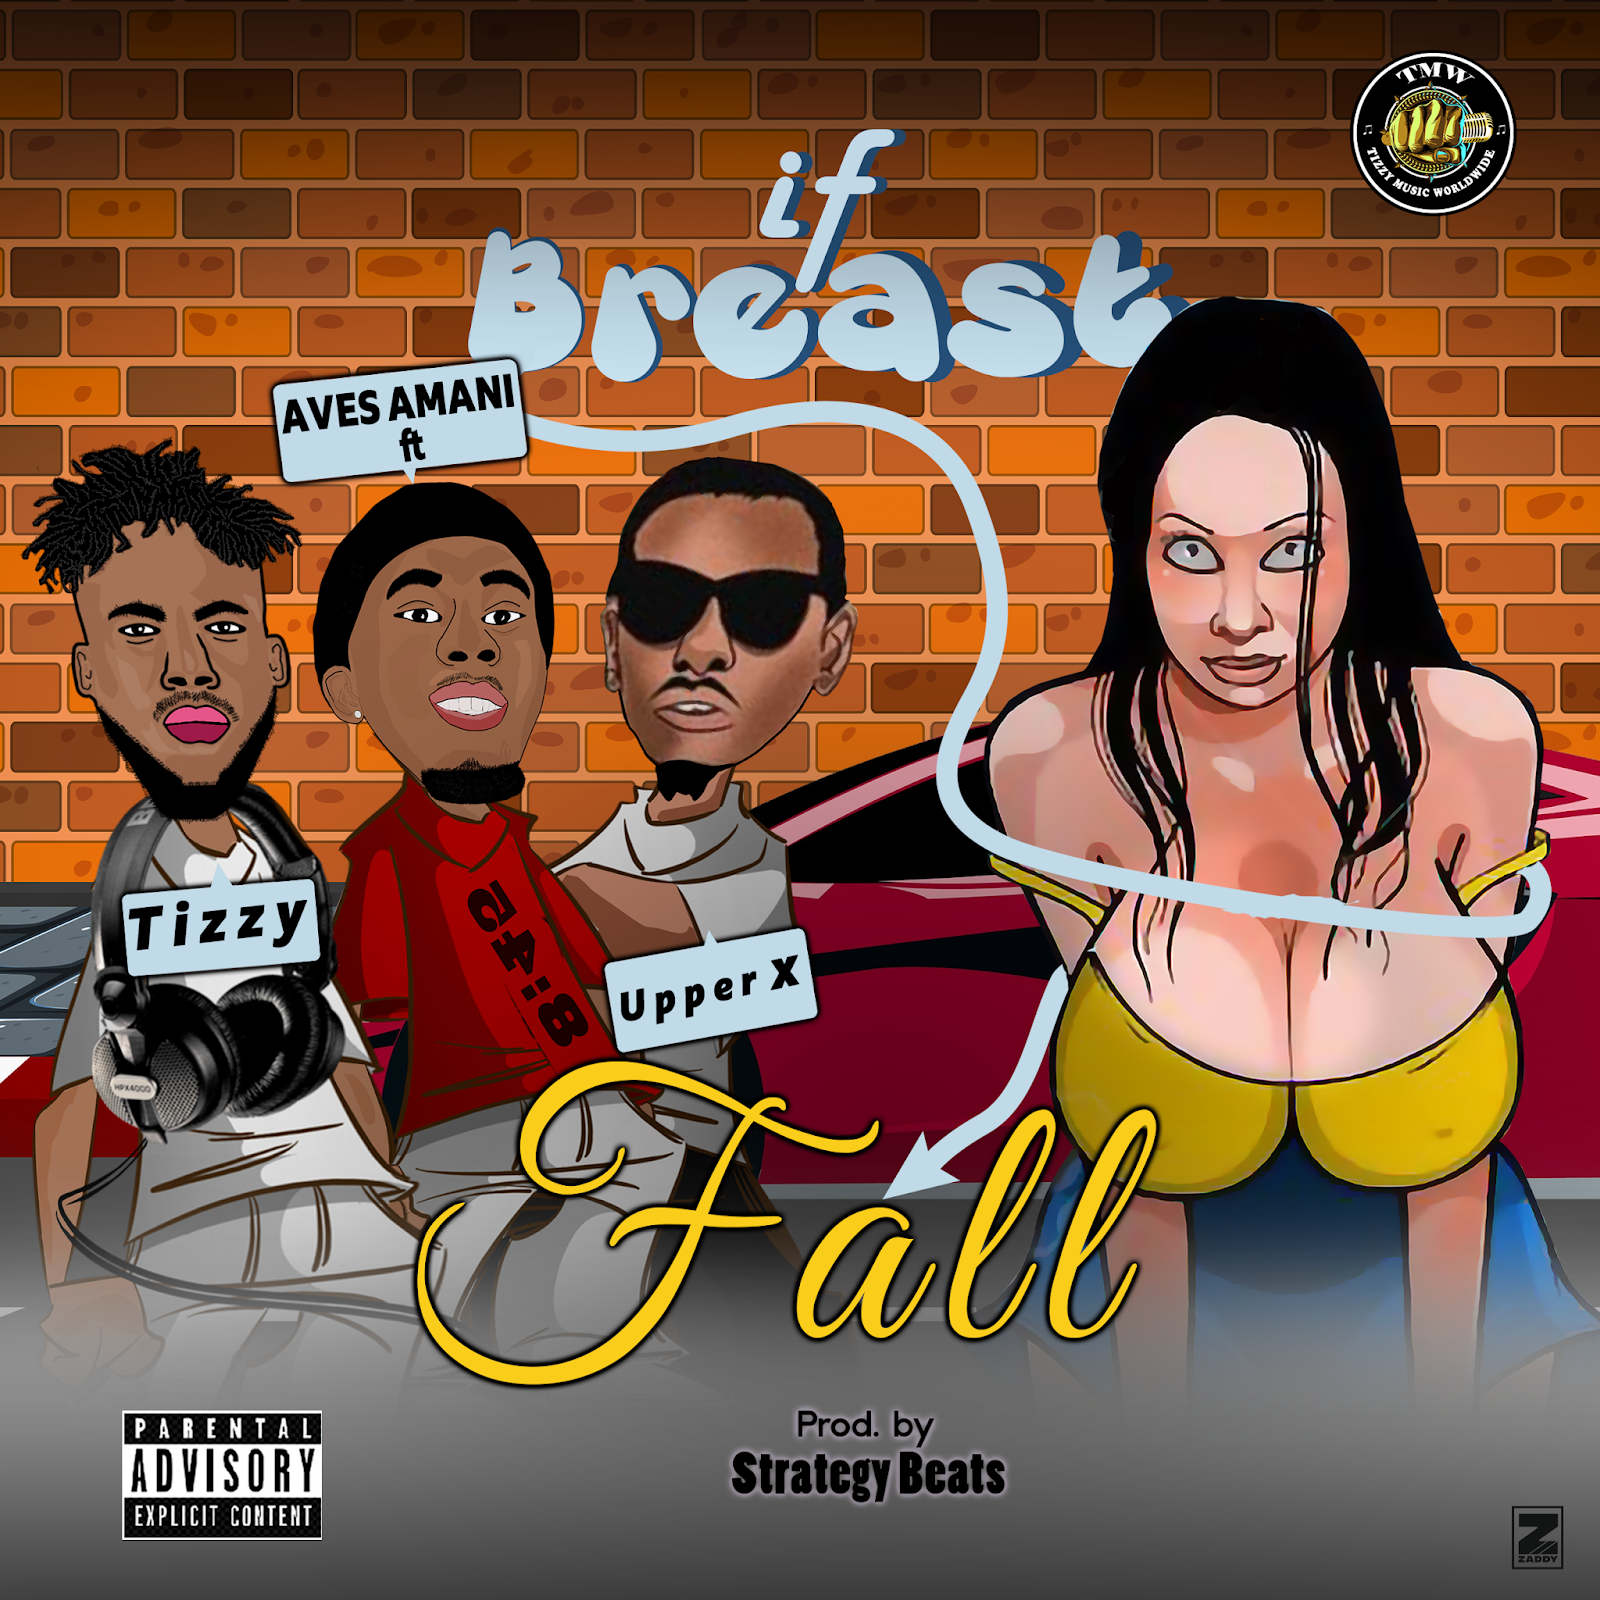 [Music] Aves Amani ft Upper X & Tizzy - If Breast Fall